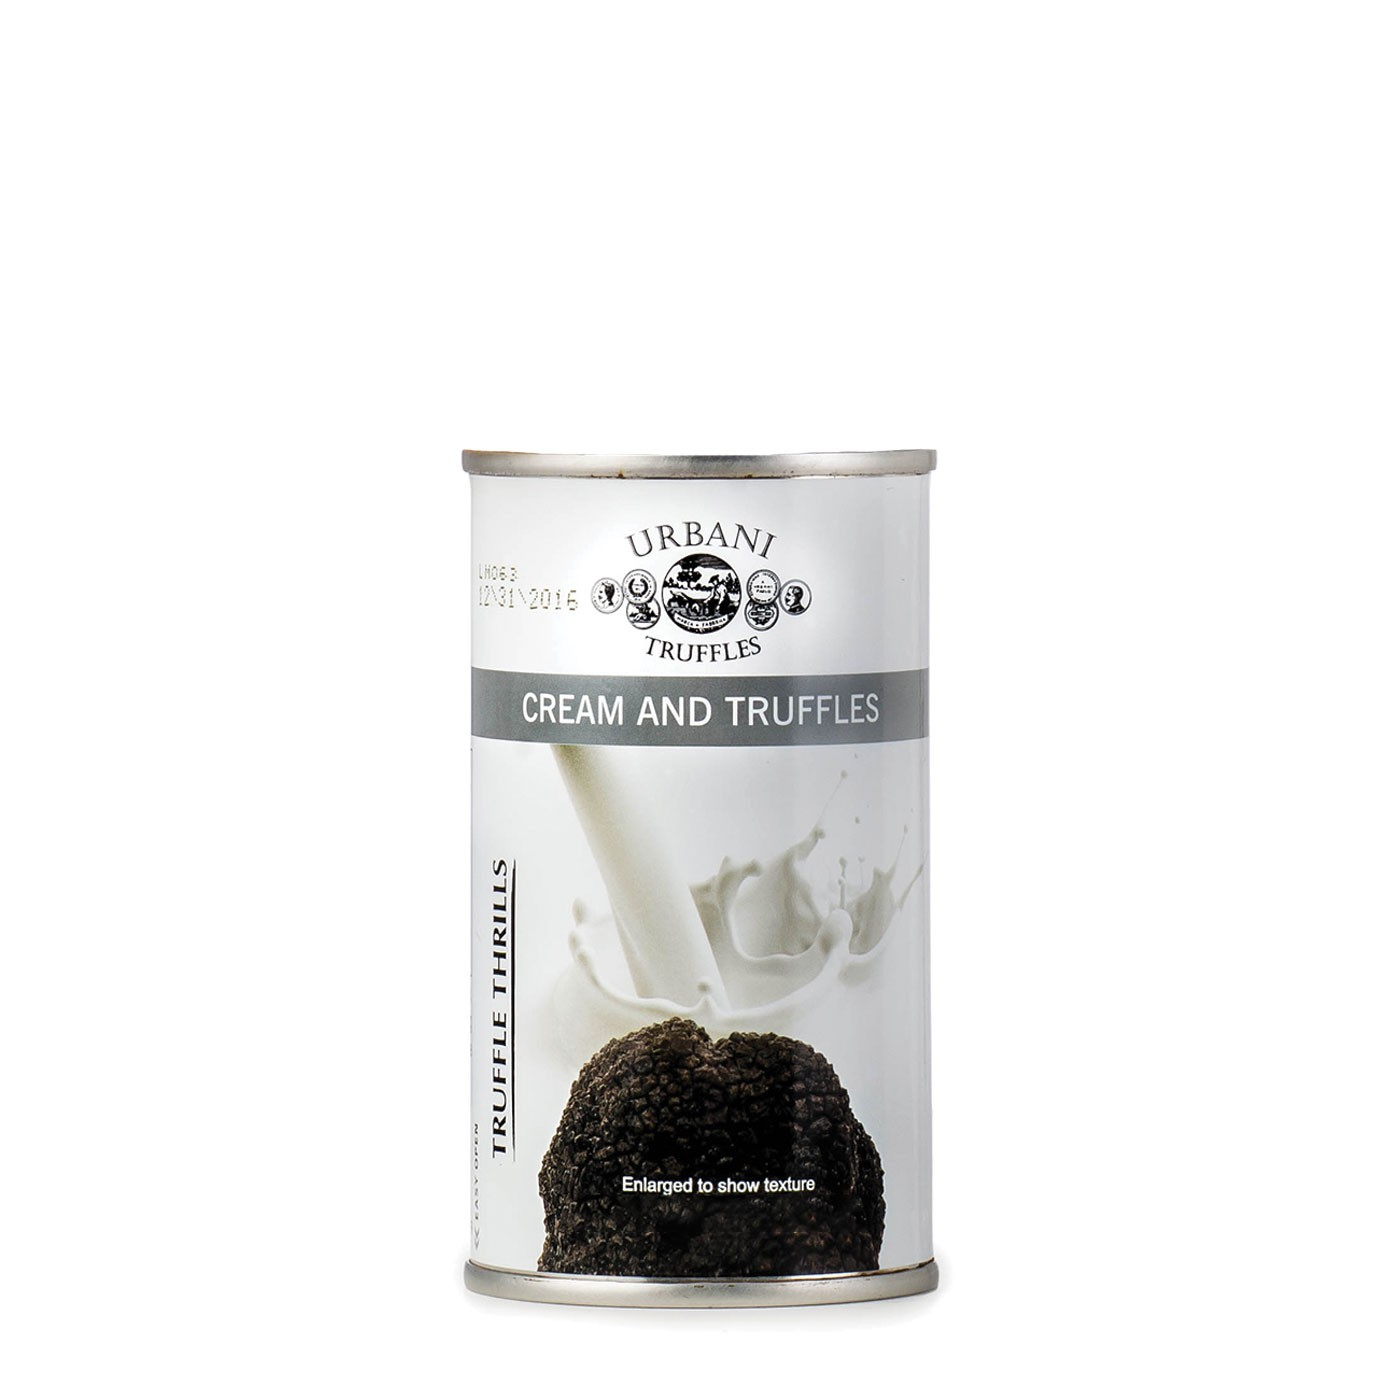 Truffles & Cream Sauce 13 oz